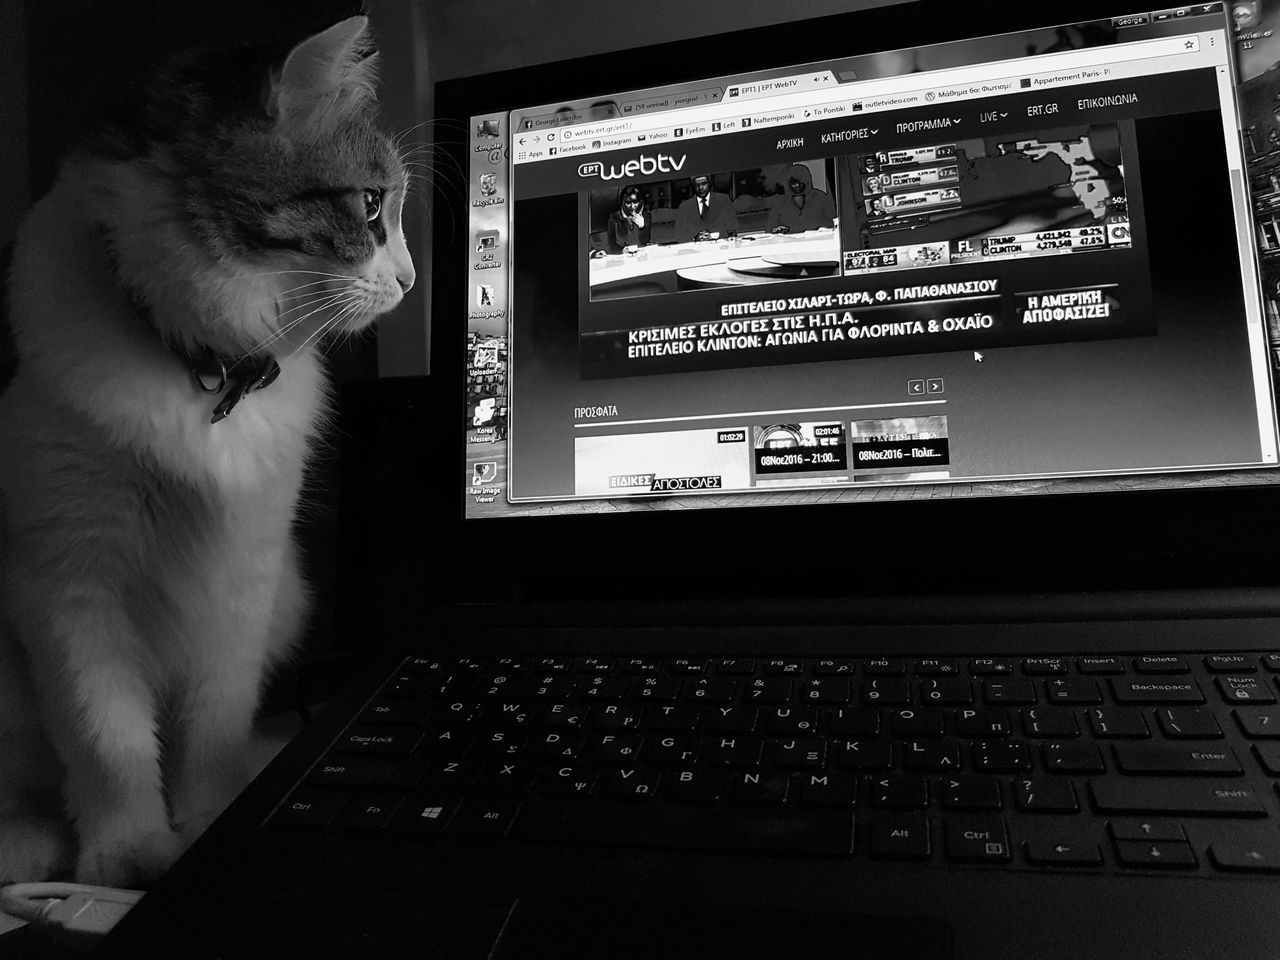 American Elections 2016 Cat Computer Election Indoors  Internet Laptop Pets Technology Using Laptop Watching